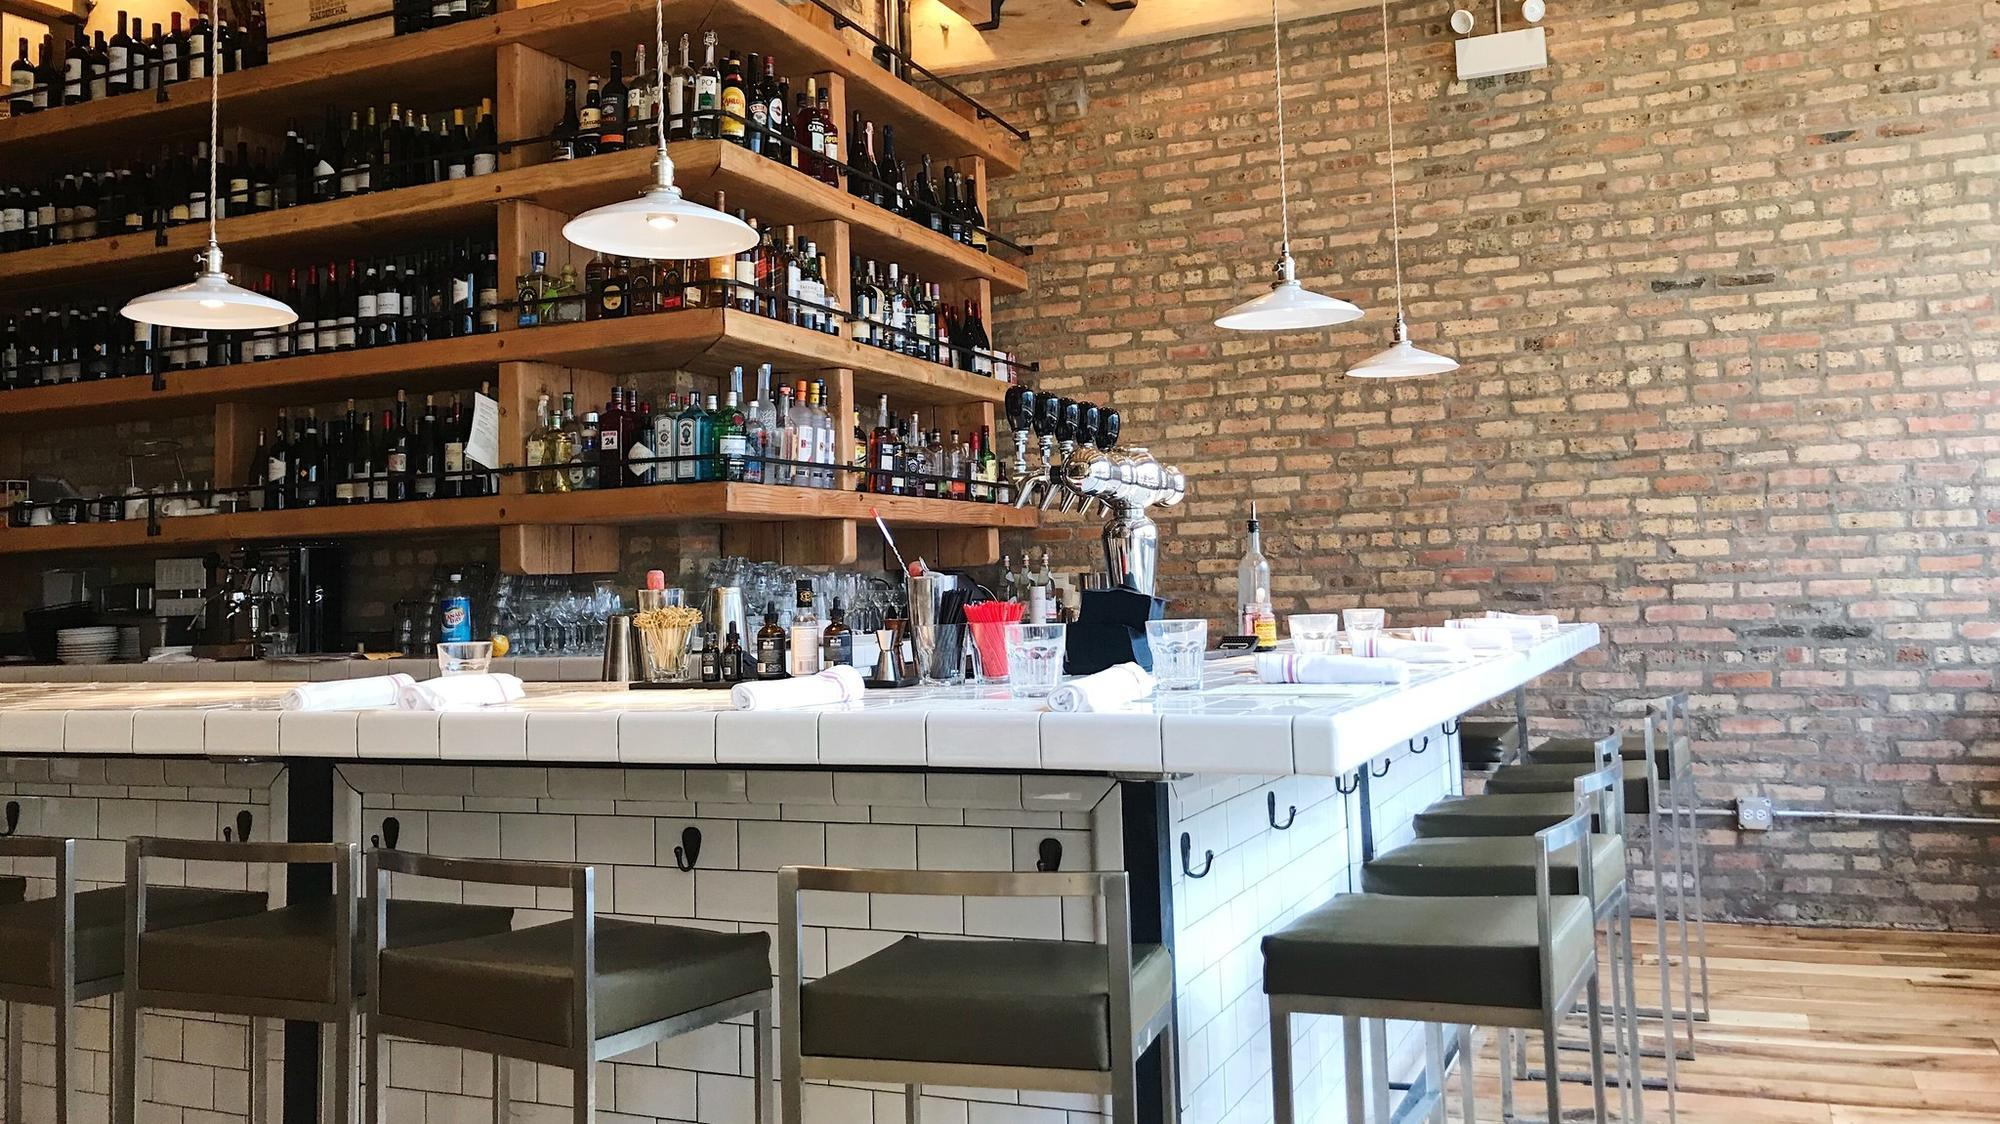 Lakeview S Lago Wine Bar Sued Accused Of Copying Menu